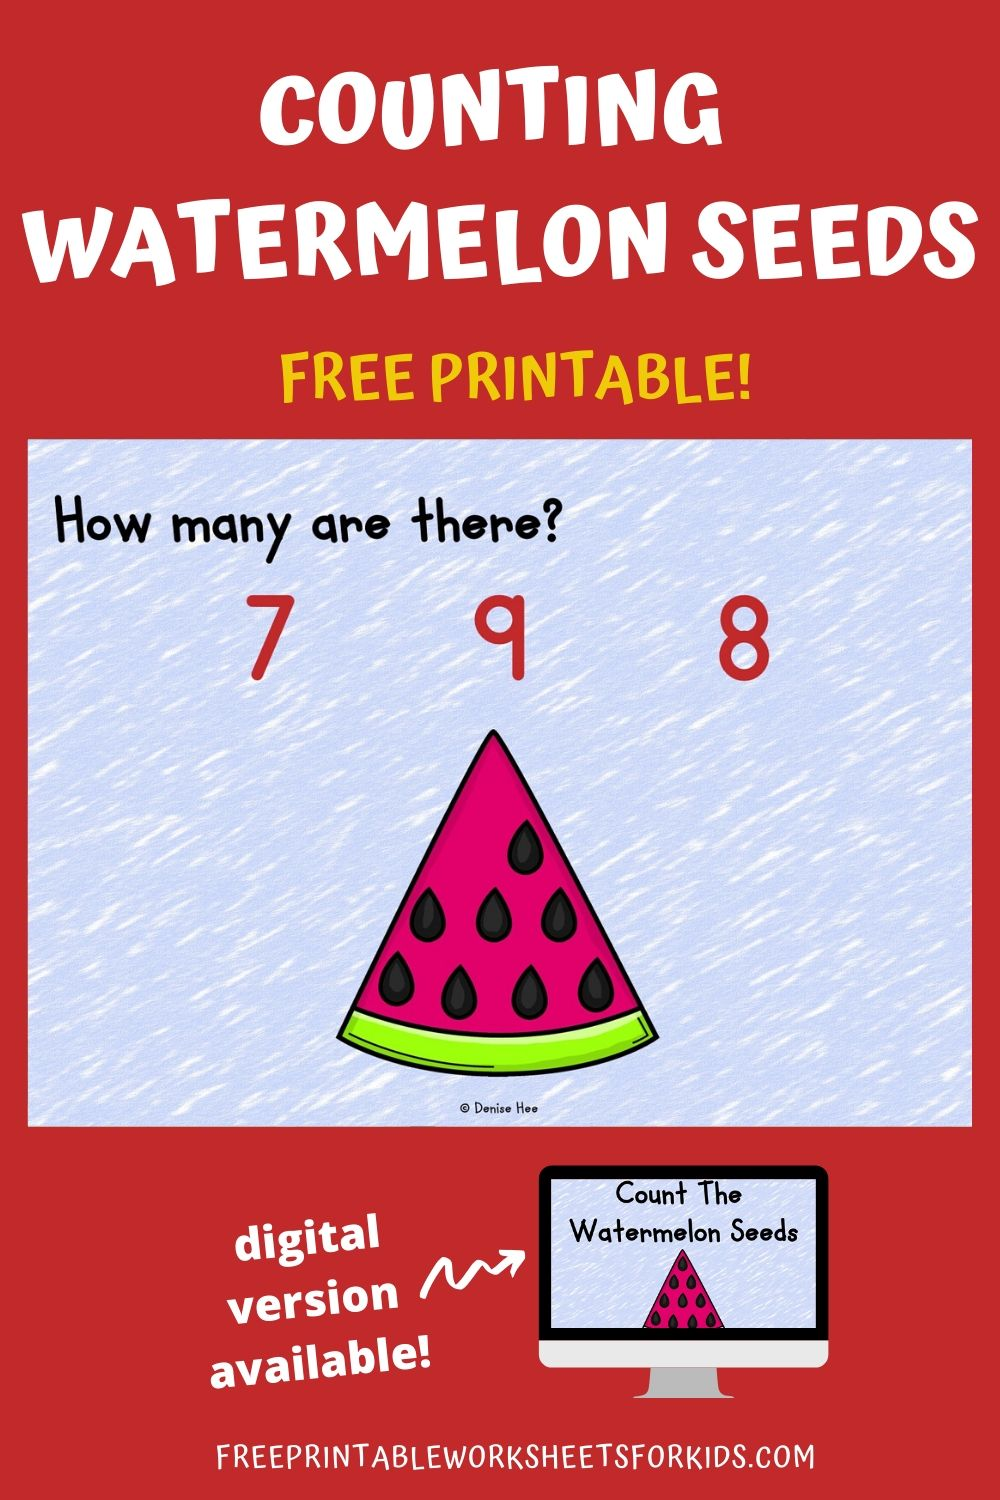 Count The Watermelon Seeds 1-10 | Free Printable Worksheets For Kids | This watermelon themed game is perfect for learning how to count to 10 this summer. Grab some wooden pegs and your kids will be ready for some refreshingly good fun! Other Printable Food-Themed Centers and Worksheets Fruit and Vegetable Activity Pack - 5 activities in this pack including shadow matching, bingo, etc. Watermelon Number Puzzles - Work on number recognition and subitizing in this summer-themed game. Farmers Market Activity Pack - helps kids learn about eating a rainbow of healthy foods. Counting Clip Cards Setup For this activity you will need: Paper Printer Wooden pegs or clothespins Optional: laminator If you don't have the materials needed, don't sweat! You can get it delivered to your doorstep really quickly with Amazon Prime. You can get a 30-day free trial here.  Playing This Fun Counting Game Print out the pages and cut them as needed into individual clip cards. I would suggest laminating them so you can use them again and again. Lay out the cards with some wooden pegs and that's it! Your kids are now ready for some fun math :) Additionally, you could provide some small tokens or counters that your student can use to help them count. They can place a counter over each worm to avoid counting them twice by mistake and to reinforce one to one correspondence. I have a large collection of Spring and Summer Counting Clip Cards. You can find more to complement this activity here. Pair Up This Summer Themed Math Activity Looking for more food themed printable math and literacy activities? Check out my pack of 10 Fruit and Vegetables Themed Centers here. Looking for more printable math and literacy activities for Summer? Check out my pack of 10 Ice Cream Themed Centers here. Looking for digital task cards? If you're using digital task cards in your classroom, you can find the Boom Cards version of this game in my Boom Learning shop (under Kool Kids Games) or in my Teachers Pay Teachers store.